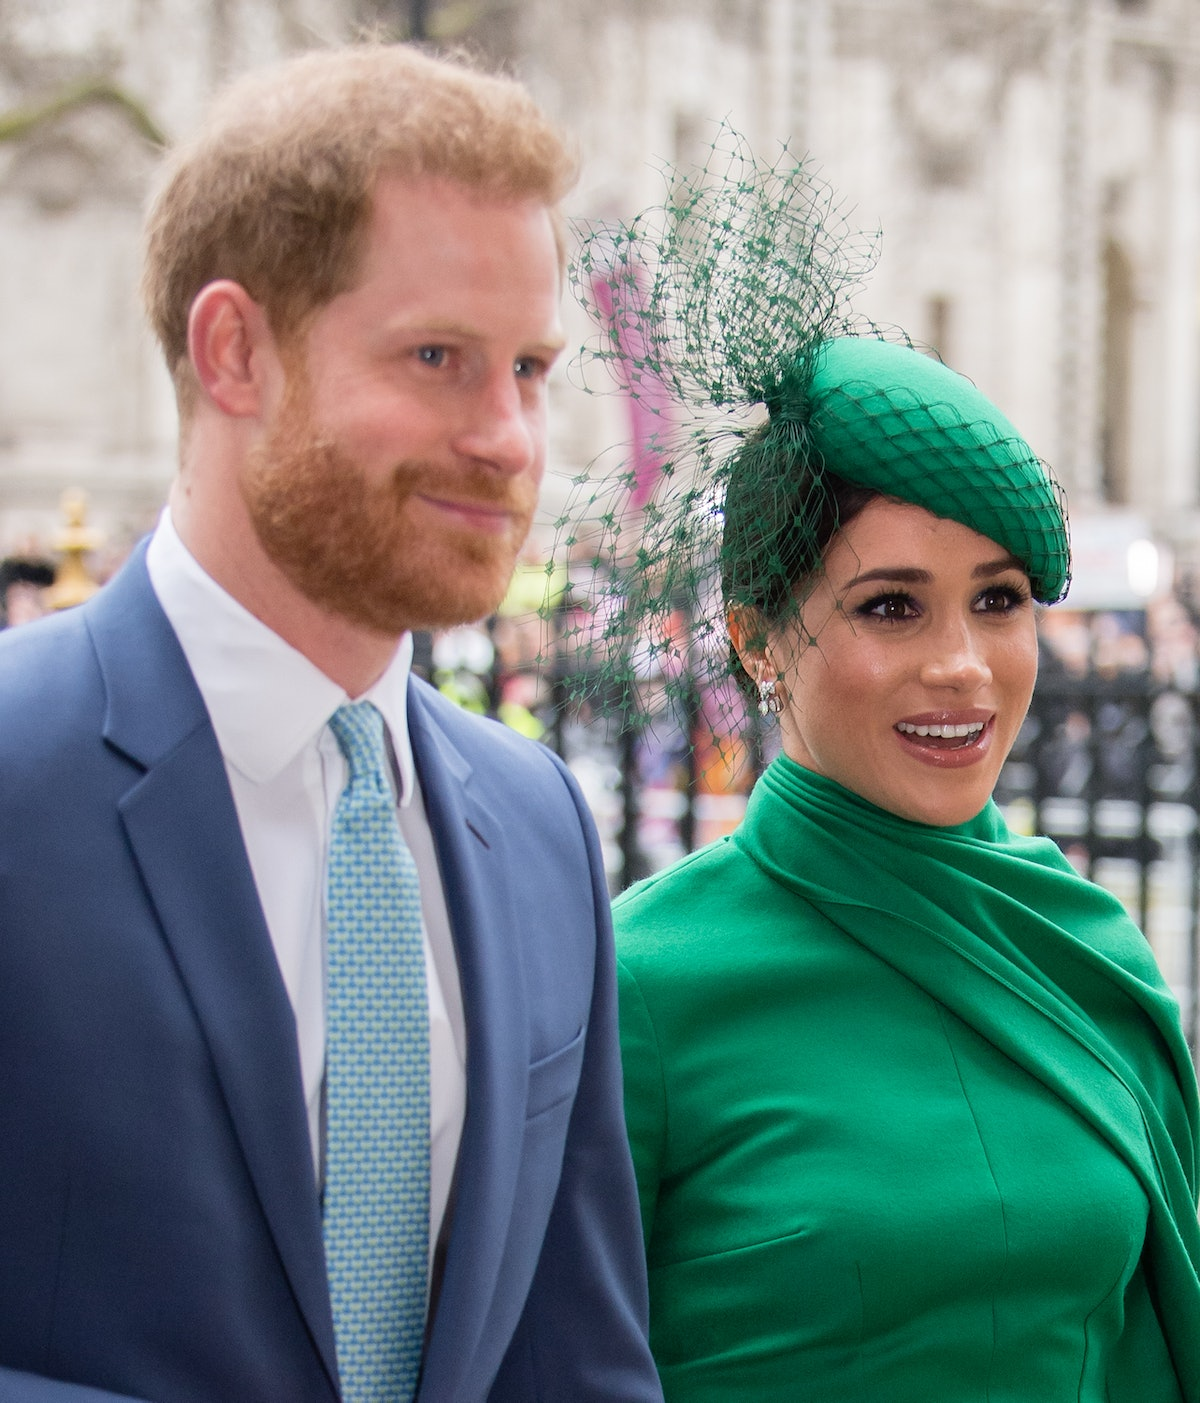 Kate Middleton spoke about Prince Harry and Meghan Markle's daughter Lilibet, saying she hopes to se...